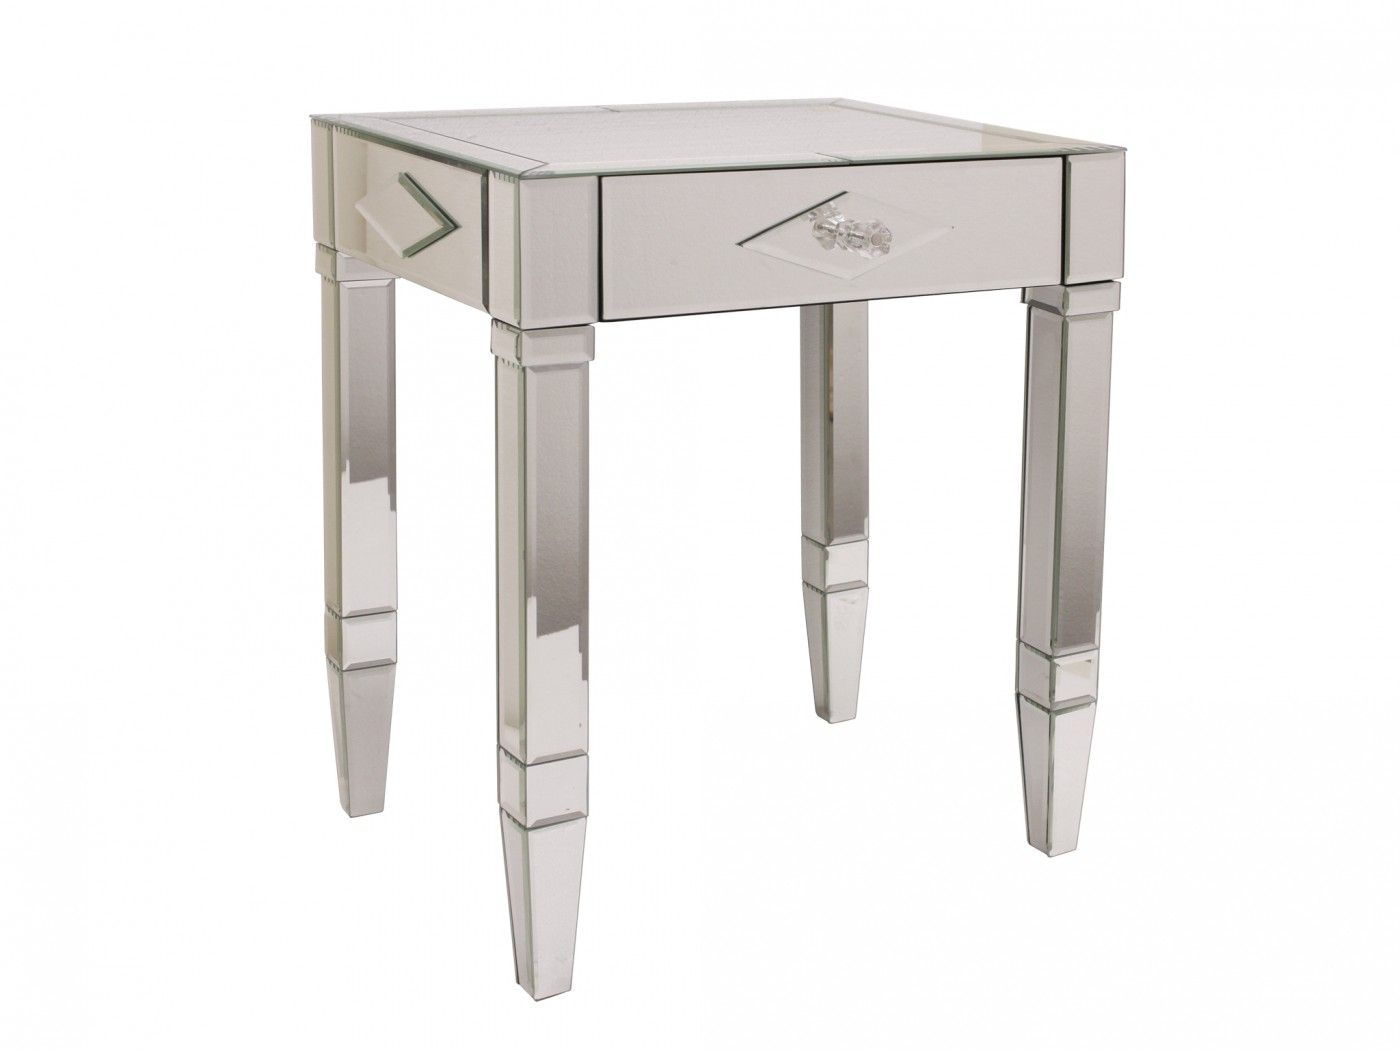 the glamour mirror and decorative details art deco design diamond mirrored accent table are hallmarks side carry motif through fabric target red cabinet small narrow hollywood